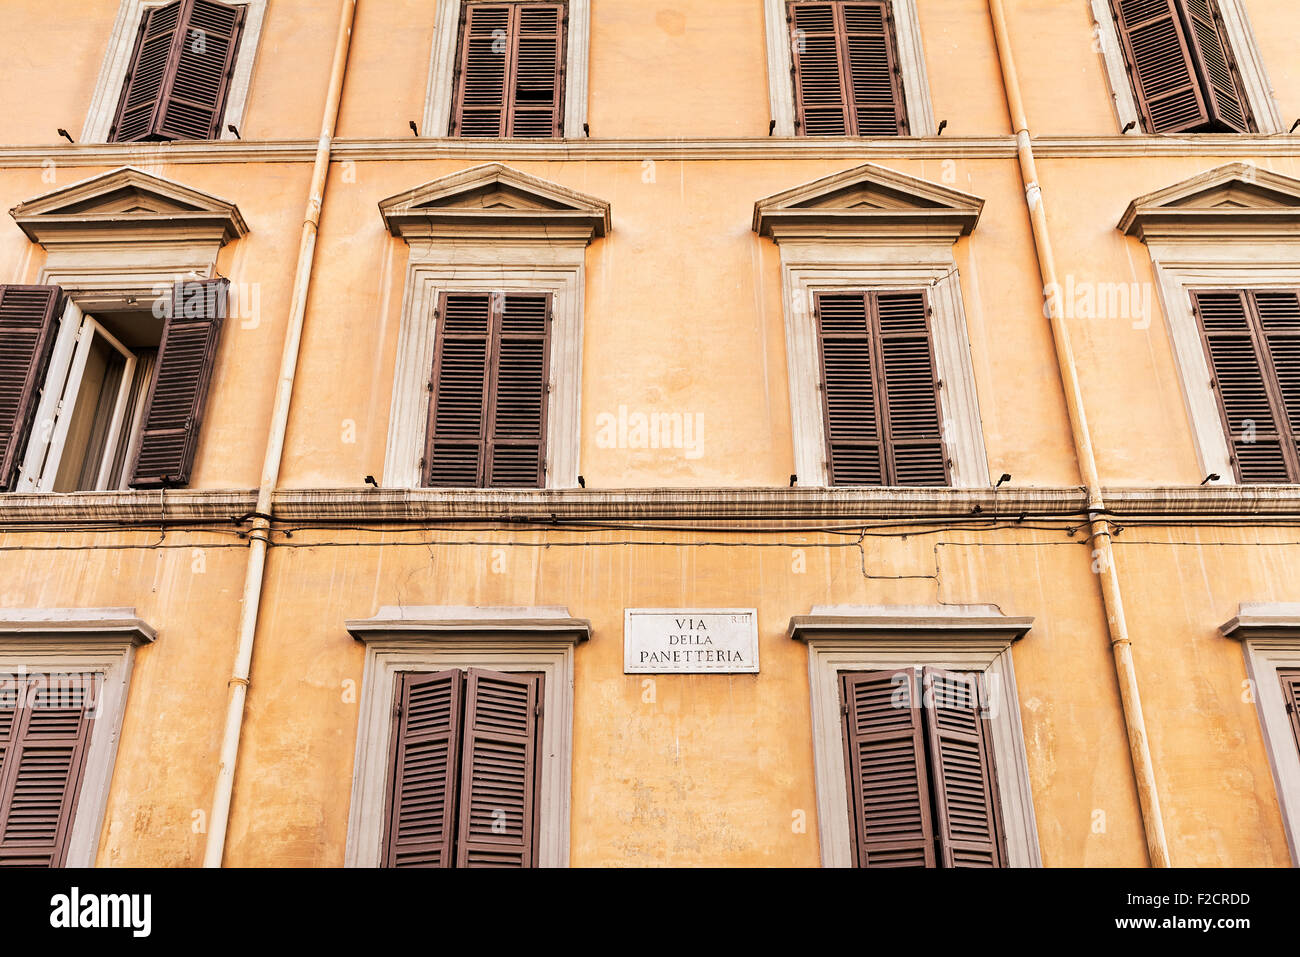 Colorful old building with shuttered windows, Rome, Italy - Stock Image